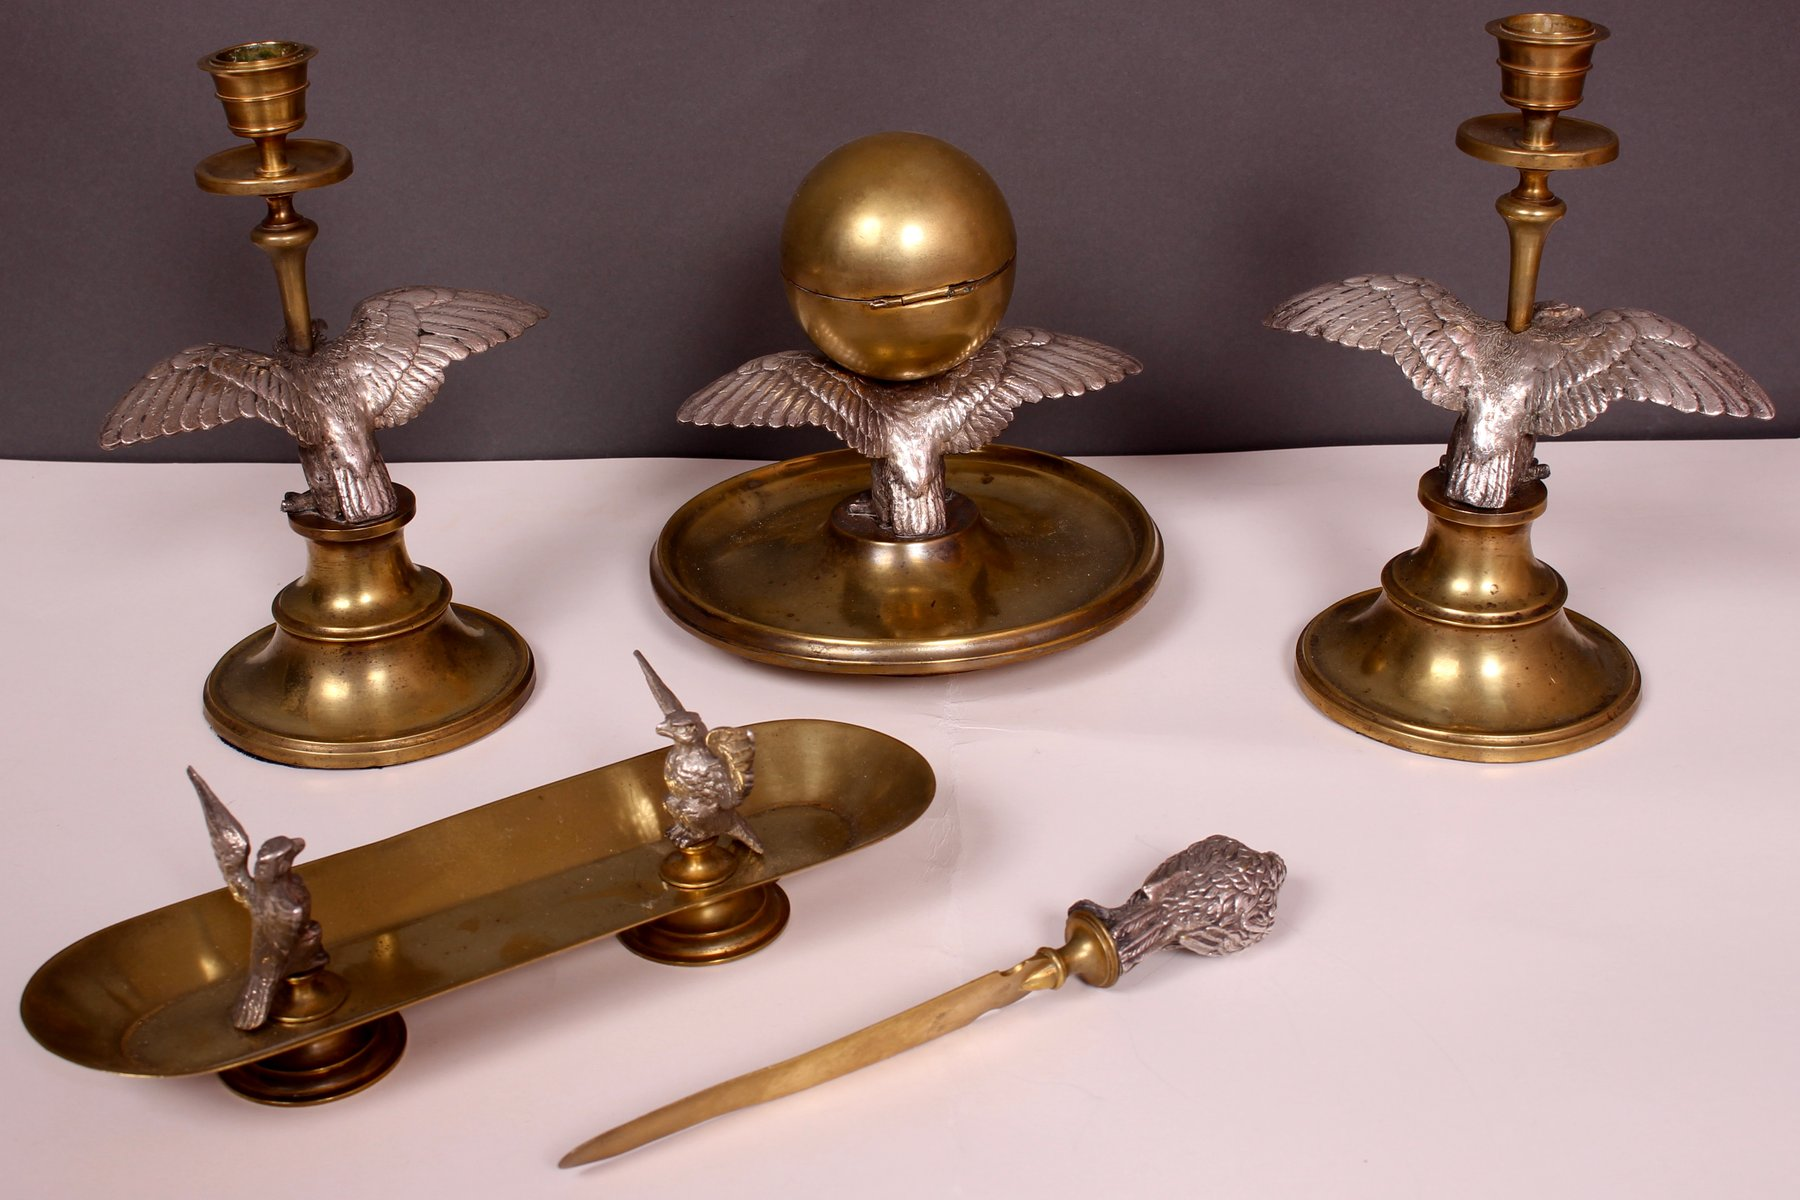 Antique Silver Gilt Brass Desk Set